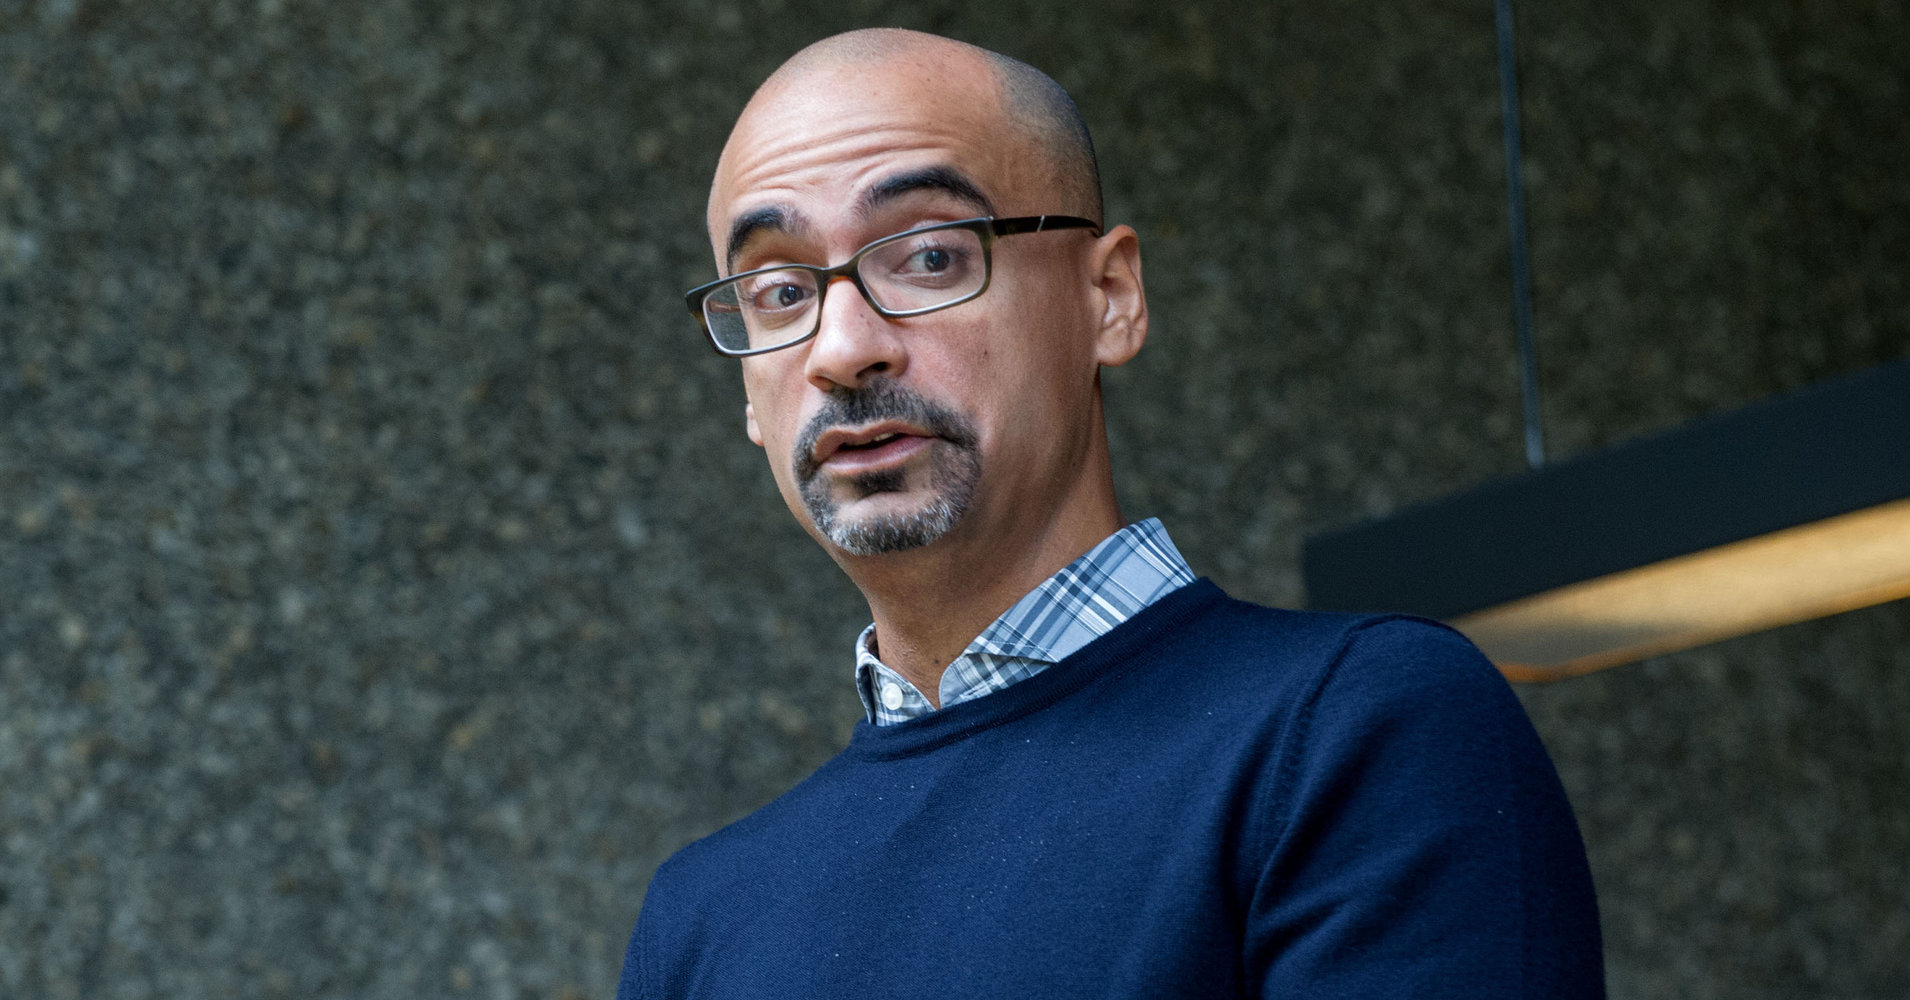 "the oedipal conflict in junot díaz Create a central conflict for the main character every good short story will have a central conflict, where the main character has to deal with an issue or problem present a conflict for your main character early in your short story  ""story of your life"" or junot diaz's short story, ""this is how you lose her""."